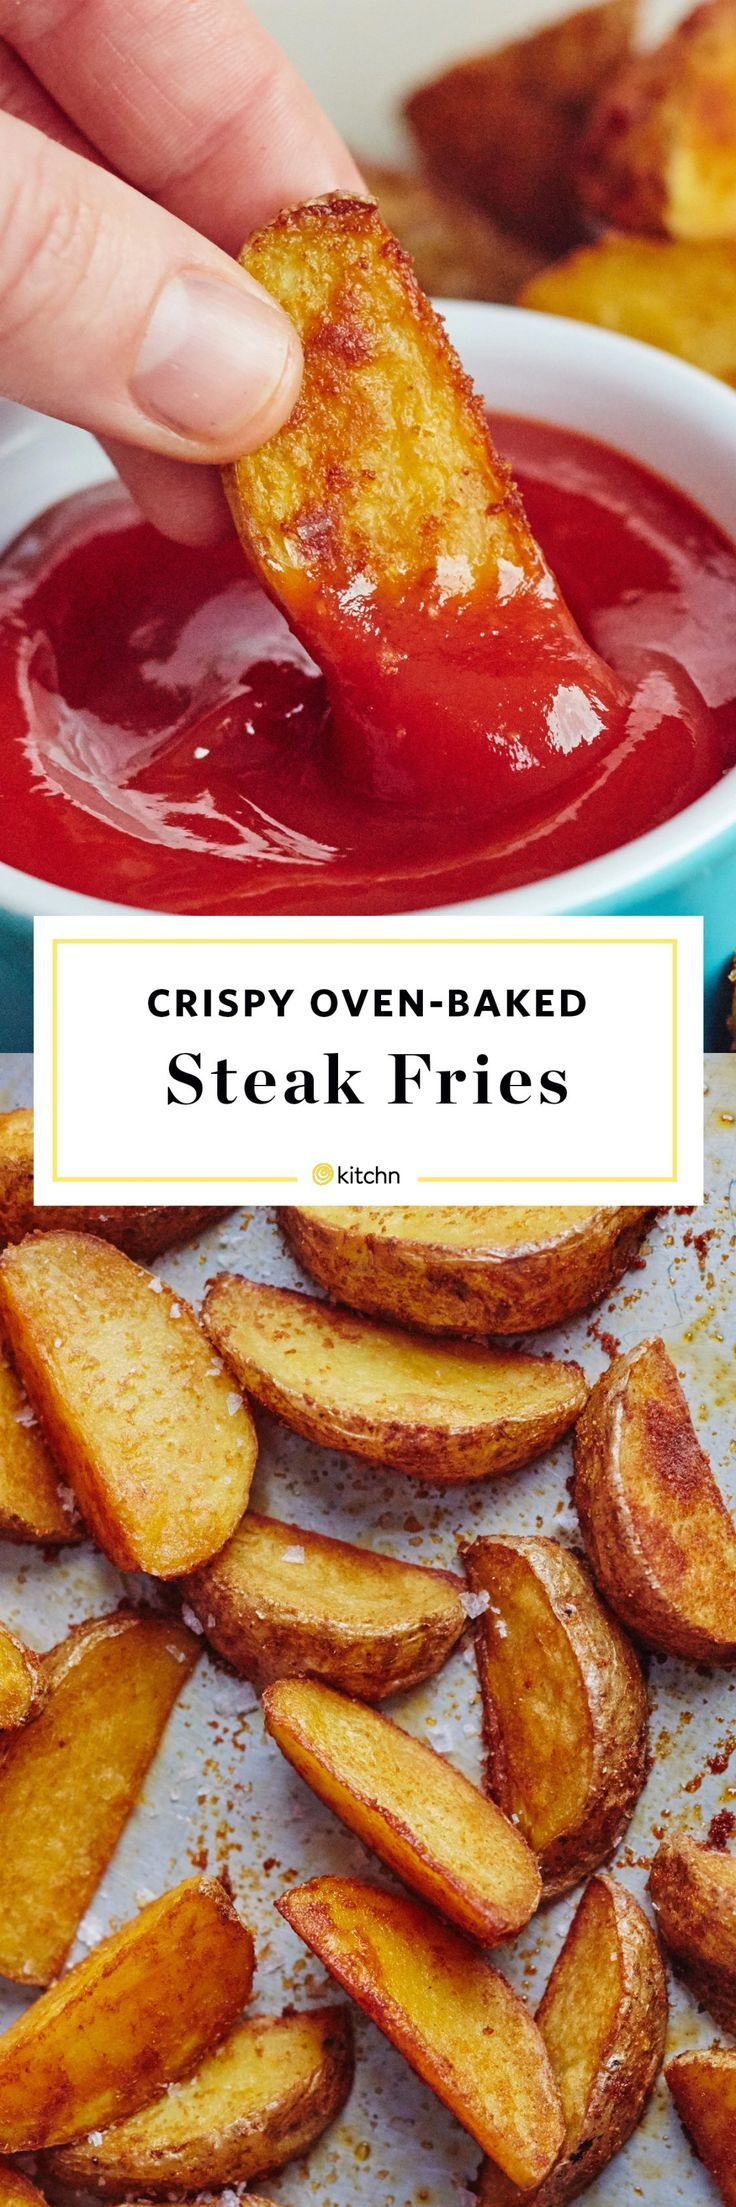 How To Make Oven Baked Steak Fries. Ovens are all you need! We'll tell you the perfect seasoning and technique for one of the best EASY dinner side dishes around. Kids LOVE sides like this and so do adults! Classic and fancy, but easy and simple enough to make for weeknight meals too! Homemade potato wedges are the perfect food.